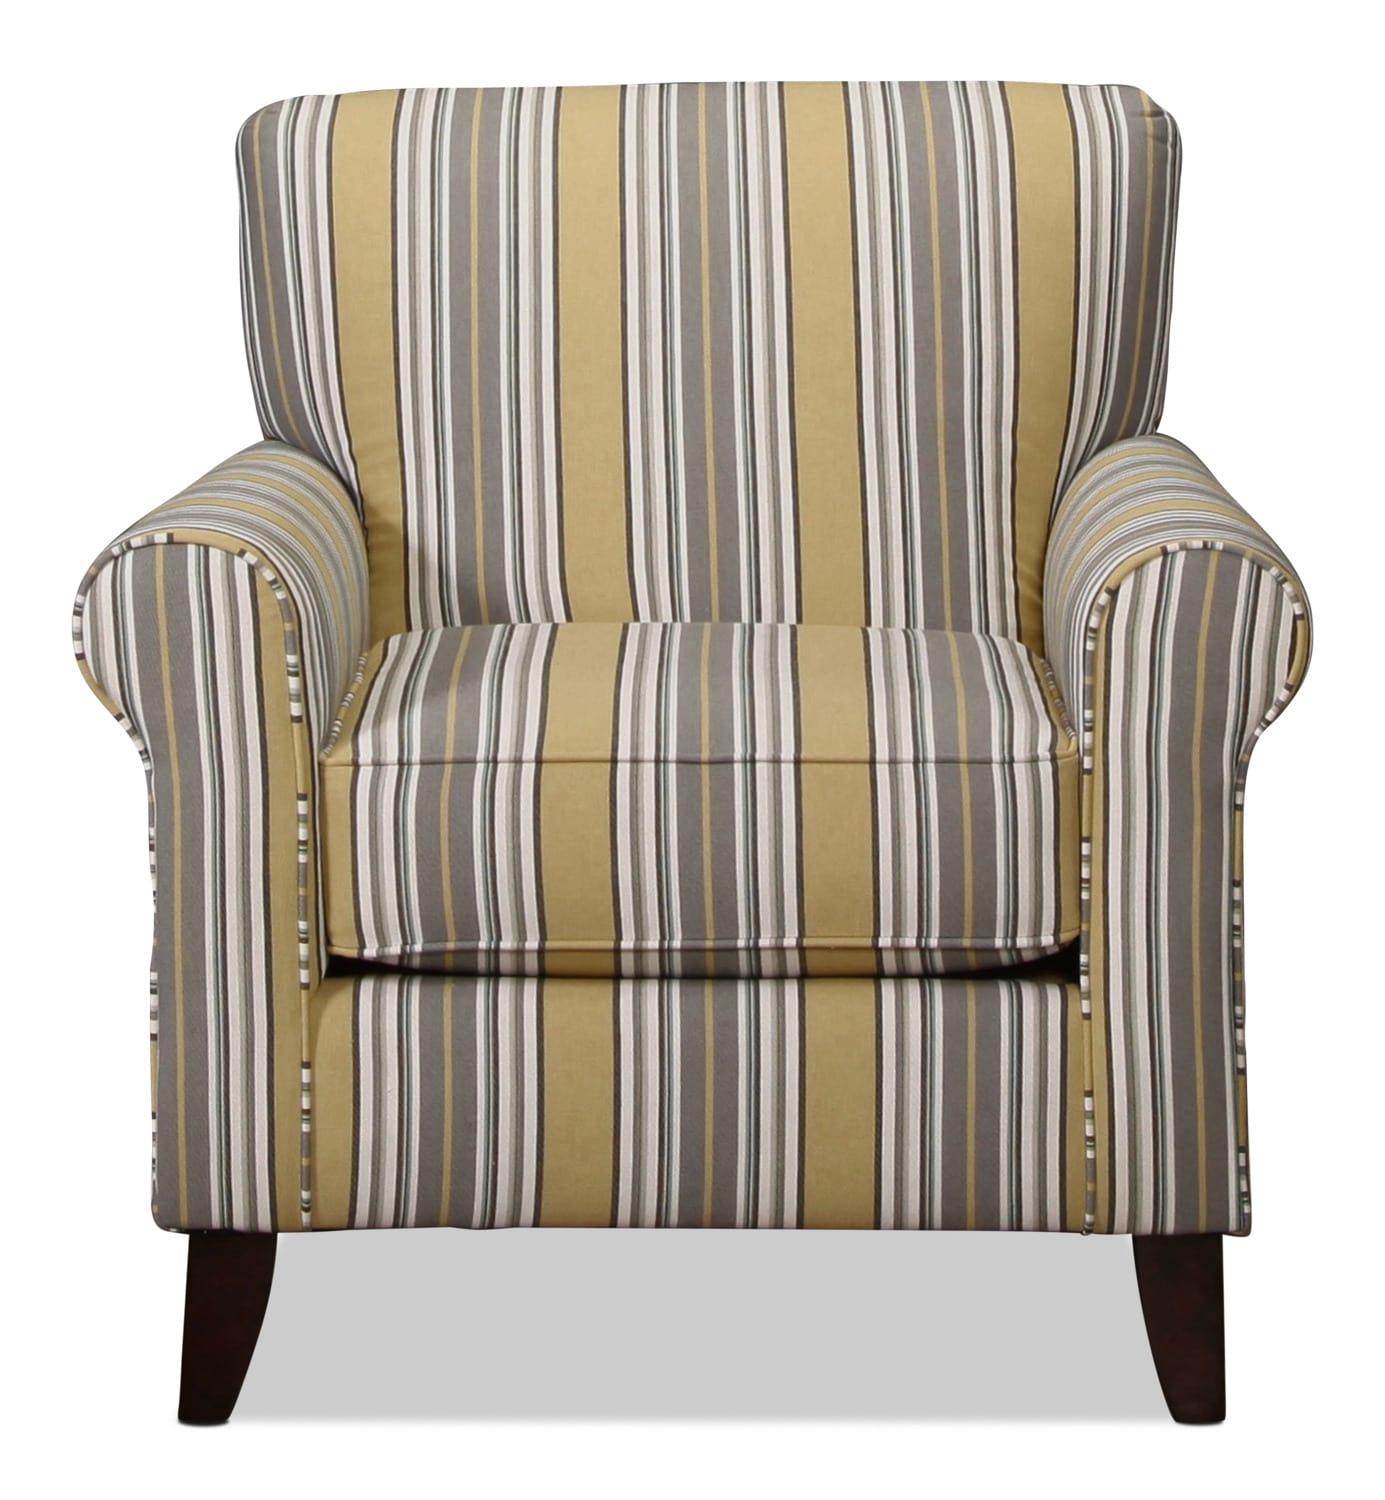 Wilmington Accent Chair - Striped